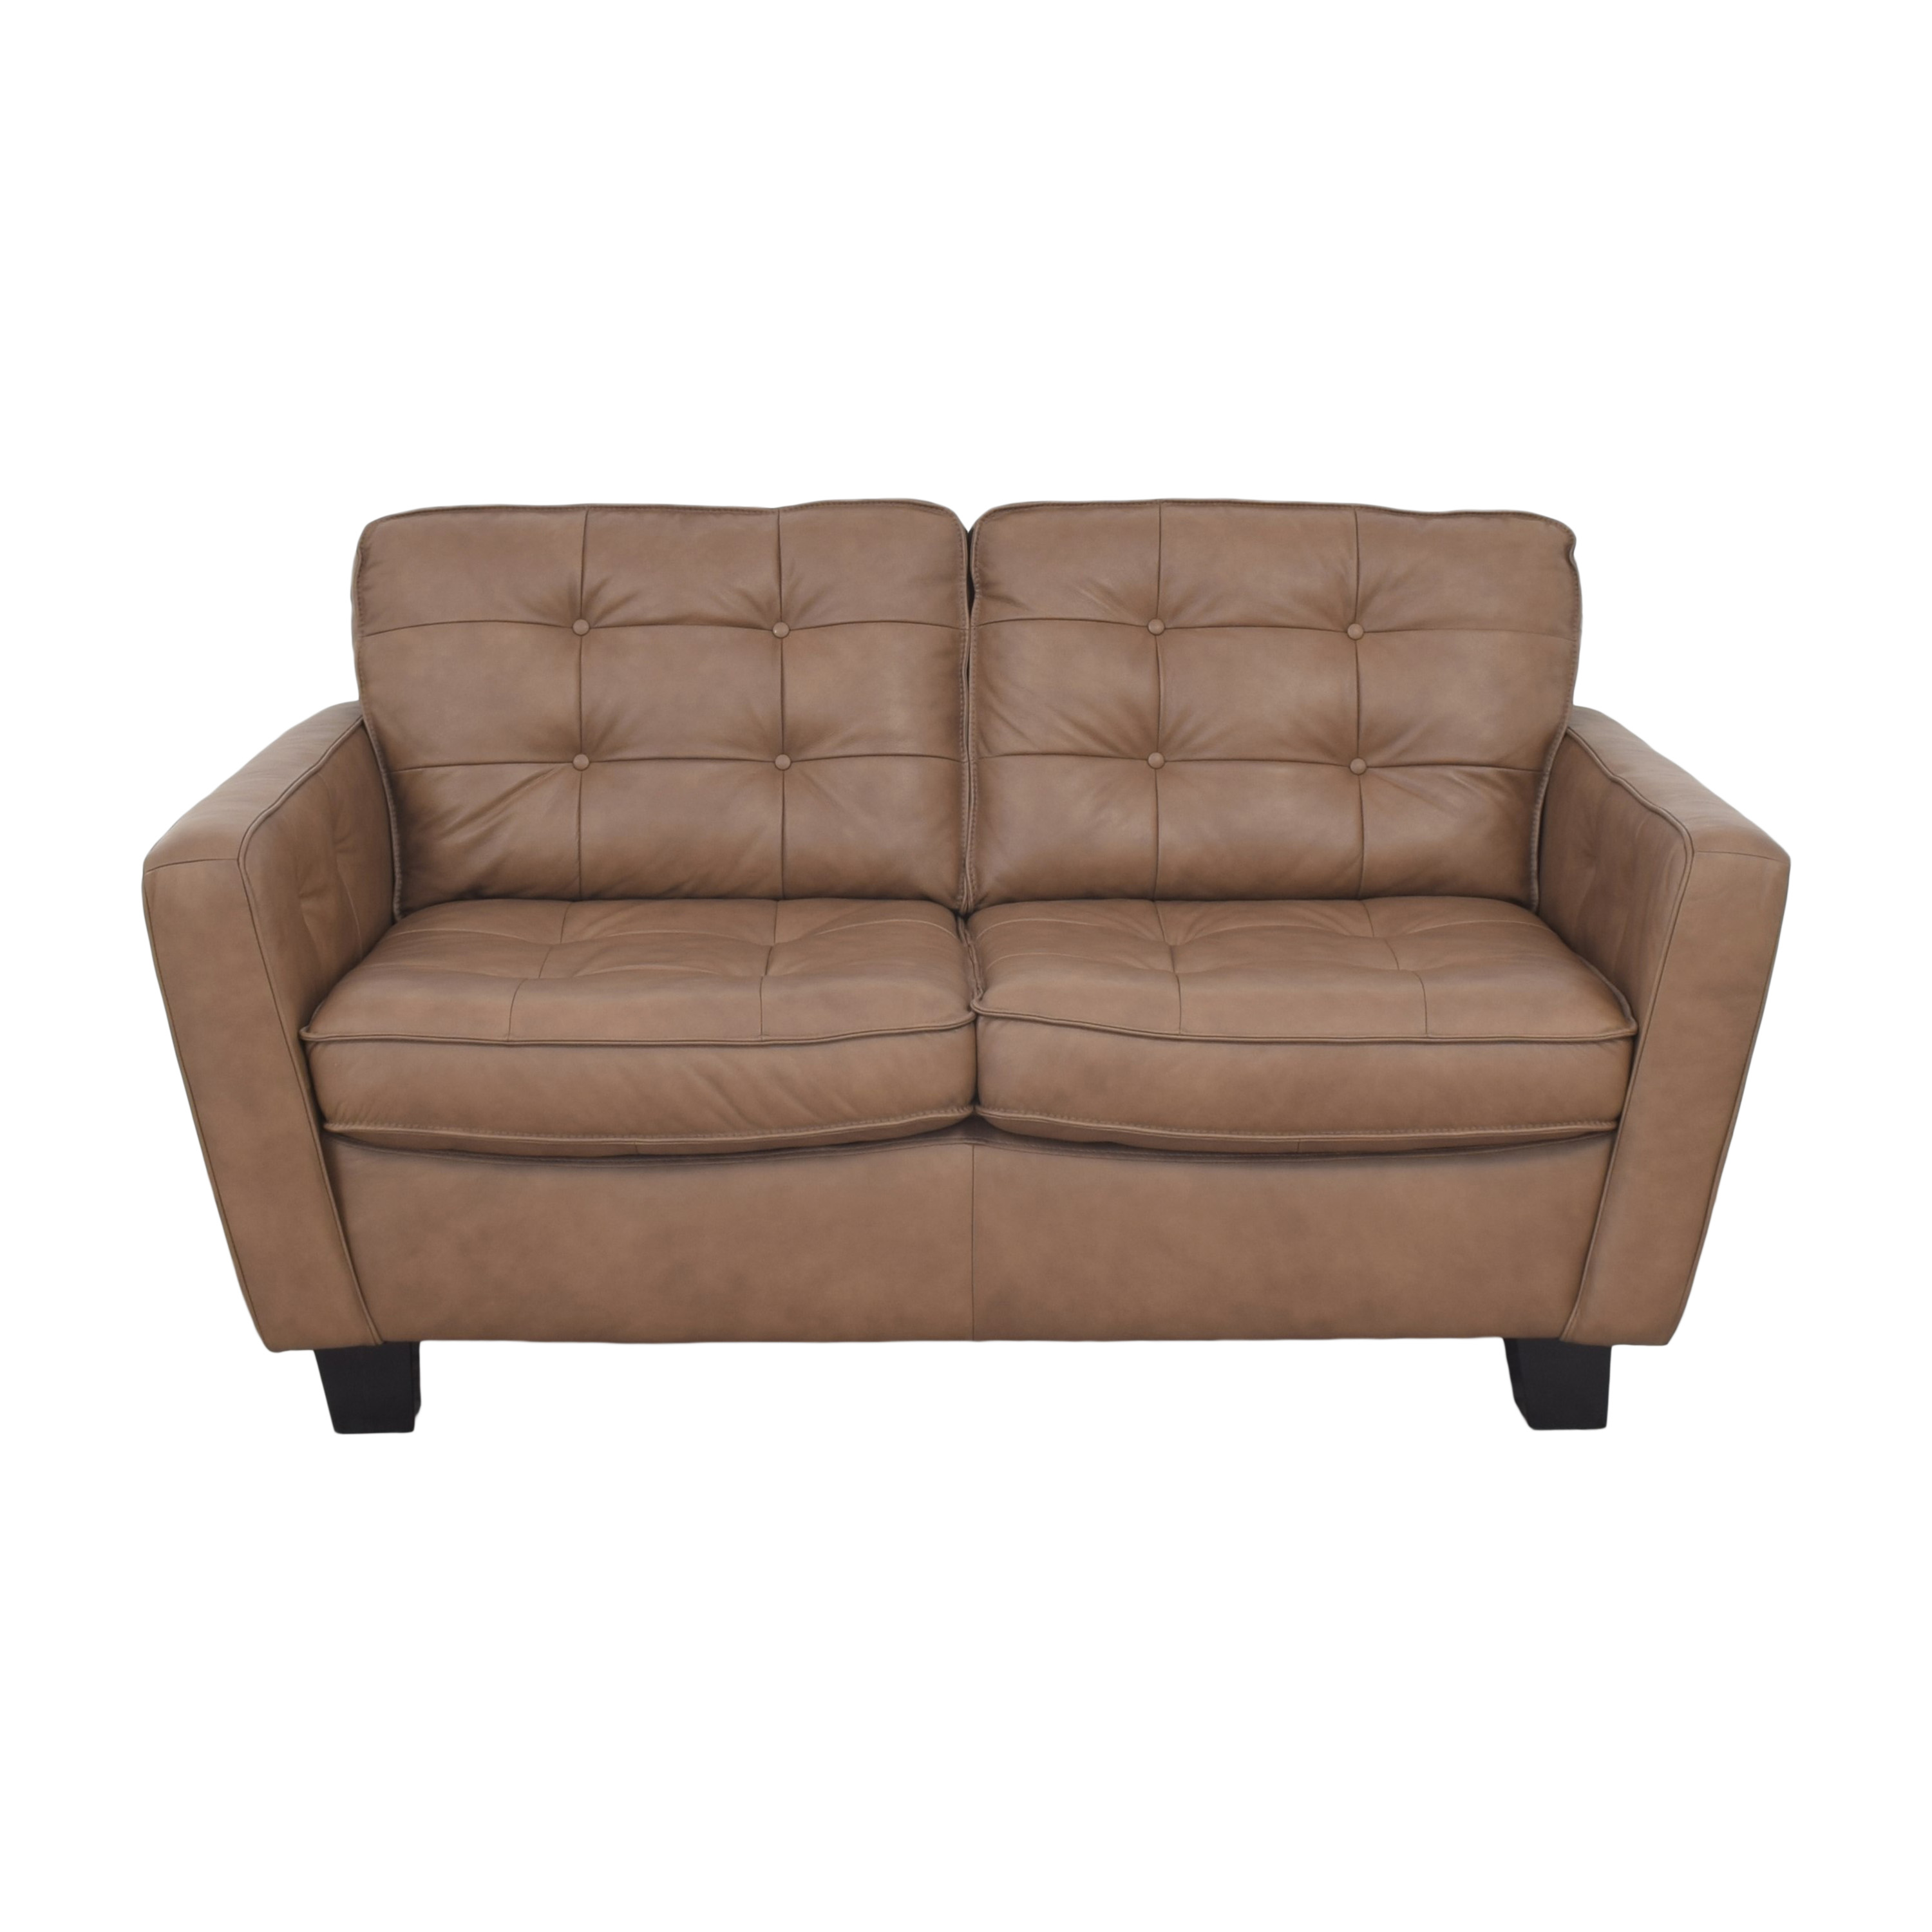 Chateau d'Ax Chateau d'Ax Tufted Loveseat nyc